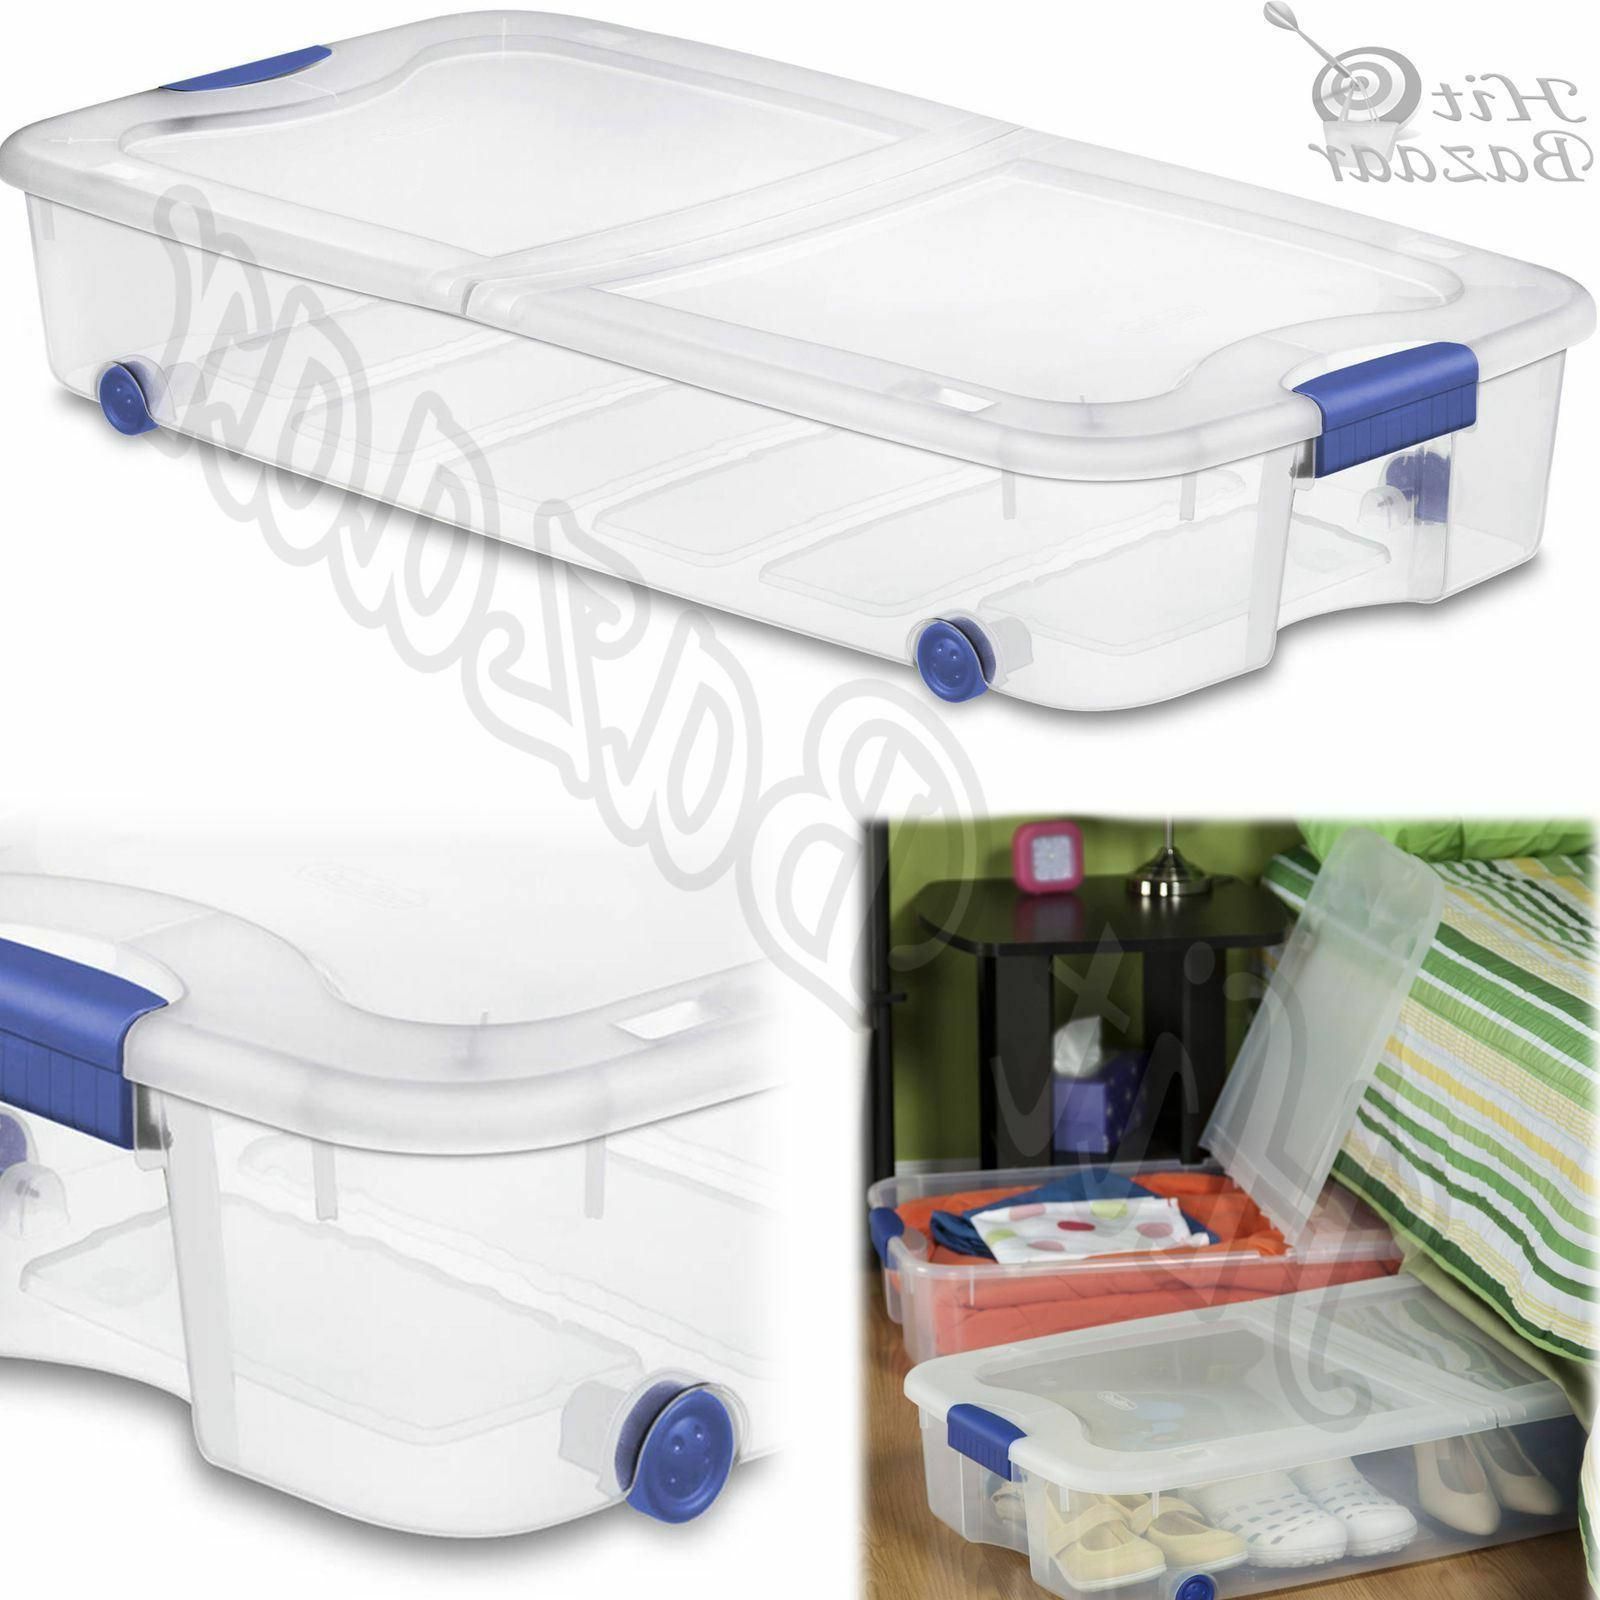 UNDER BED Containers Tubs 66 Organizer 4pc